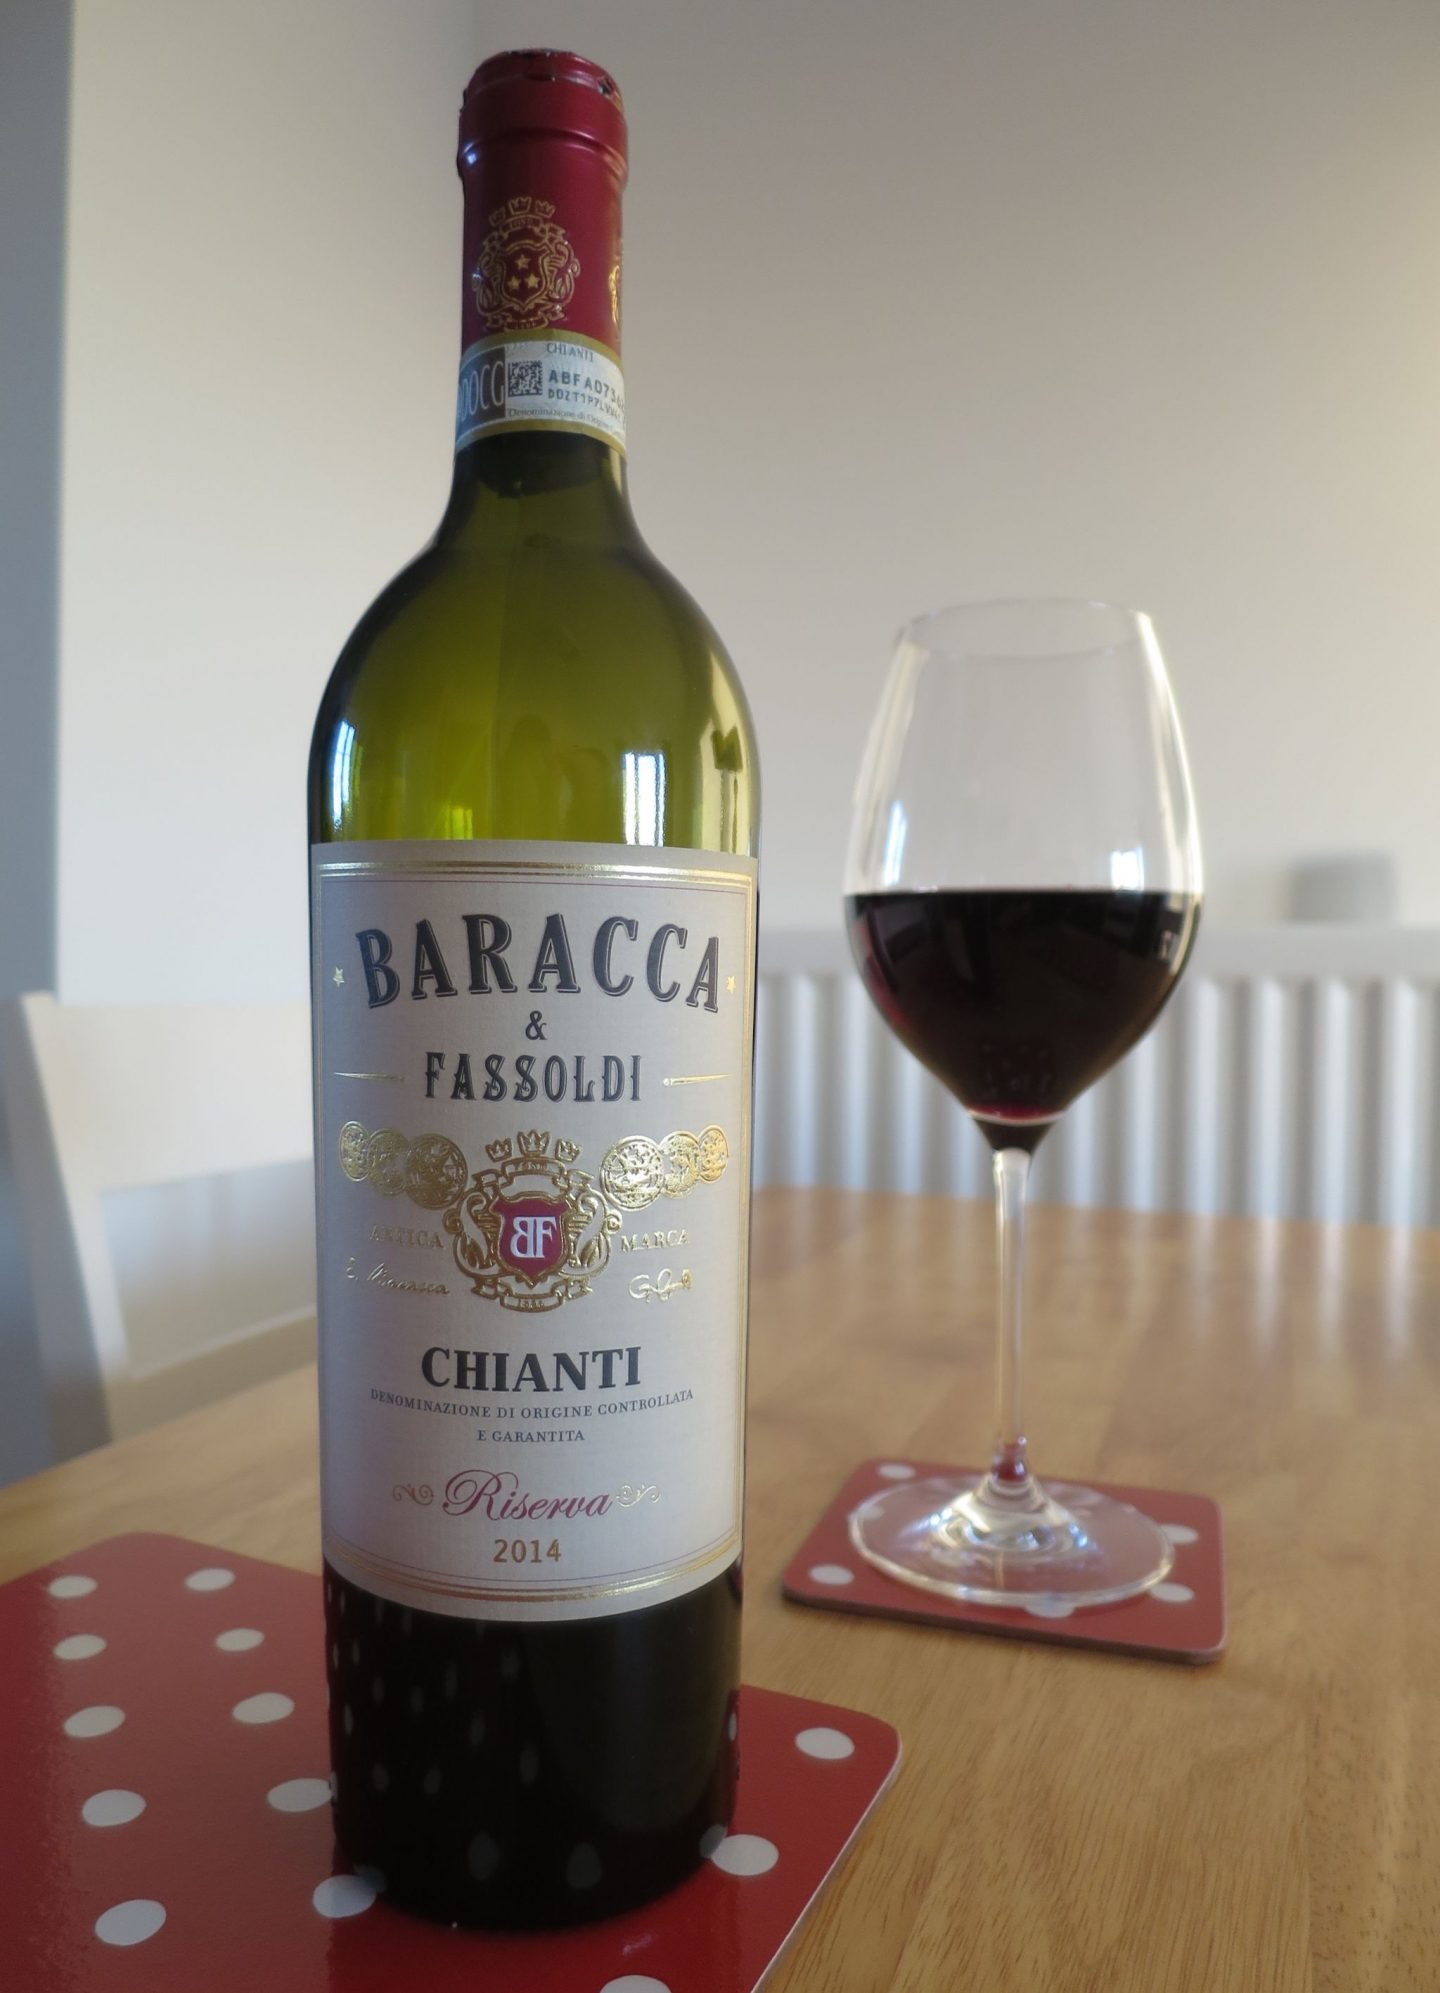 Marks and Spencer Baracca & Fassoldi Chianti Red Wine